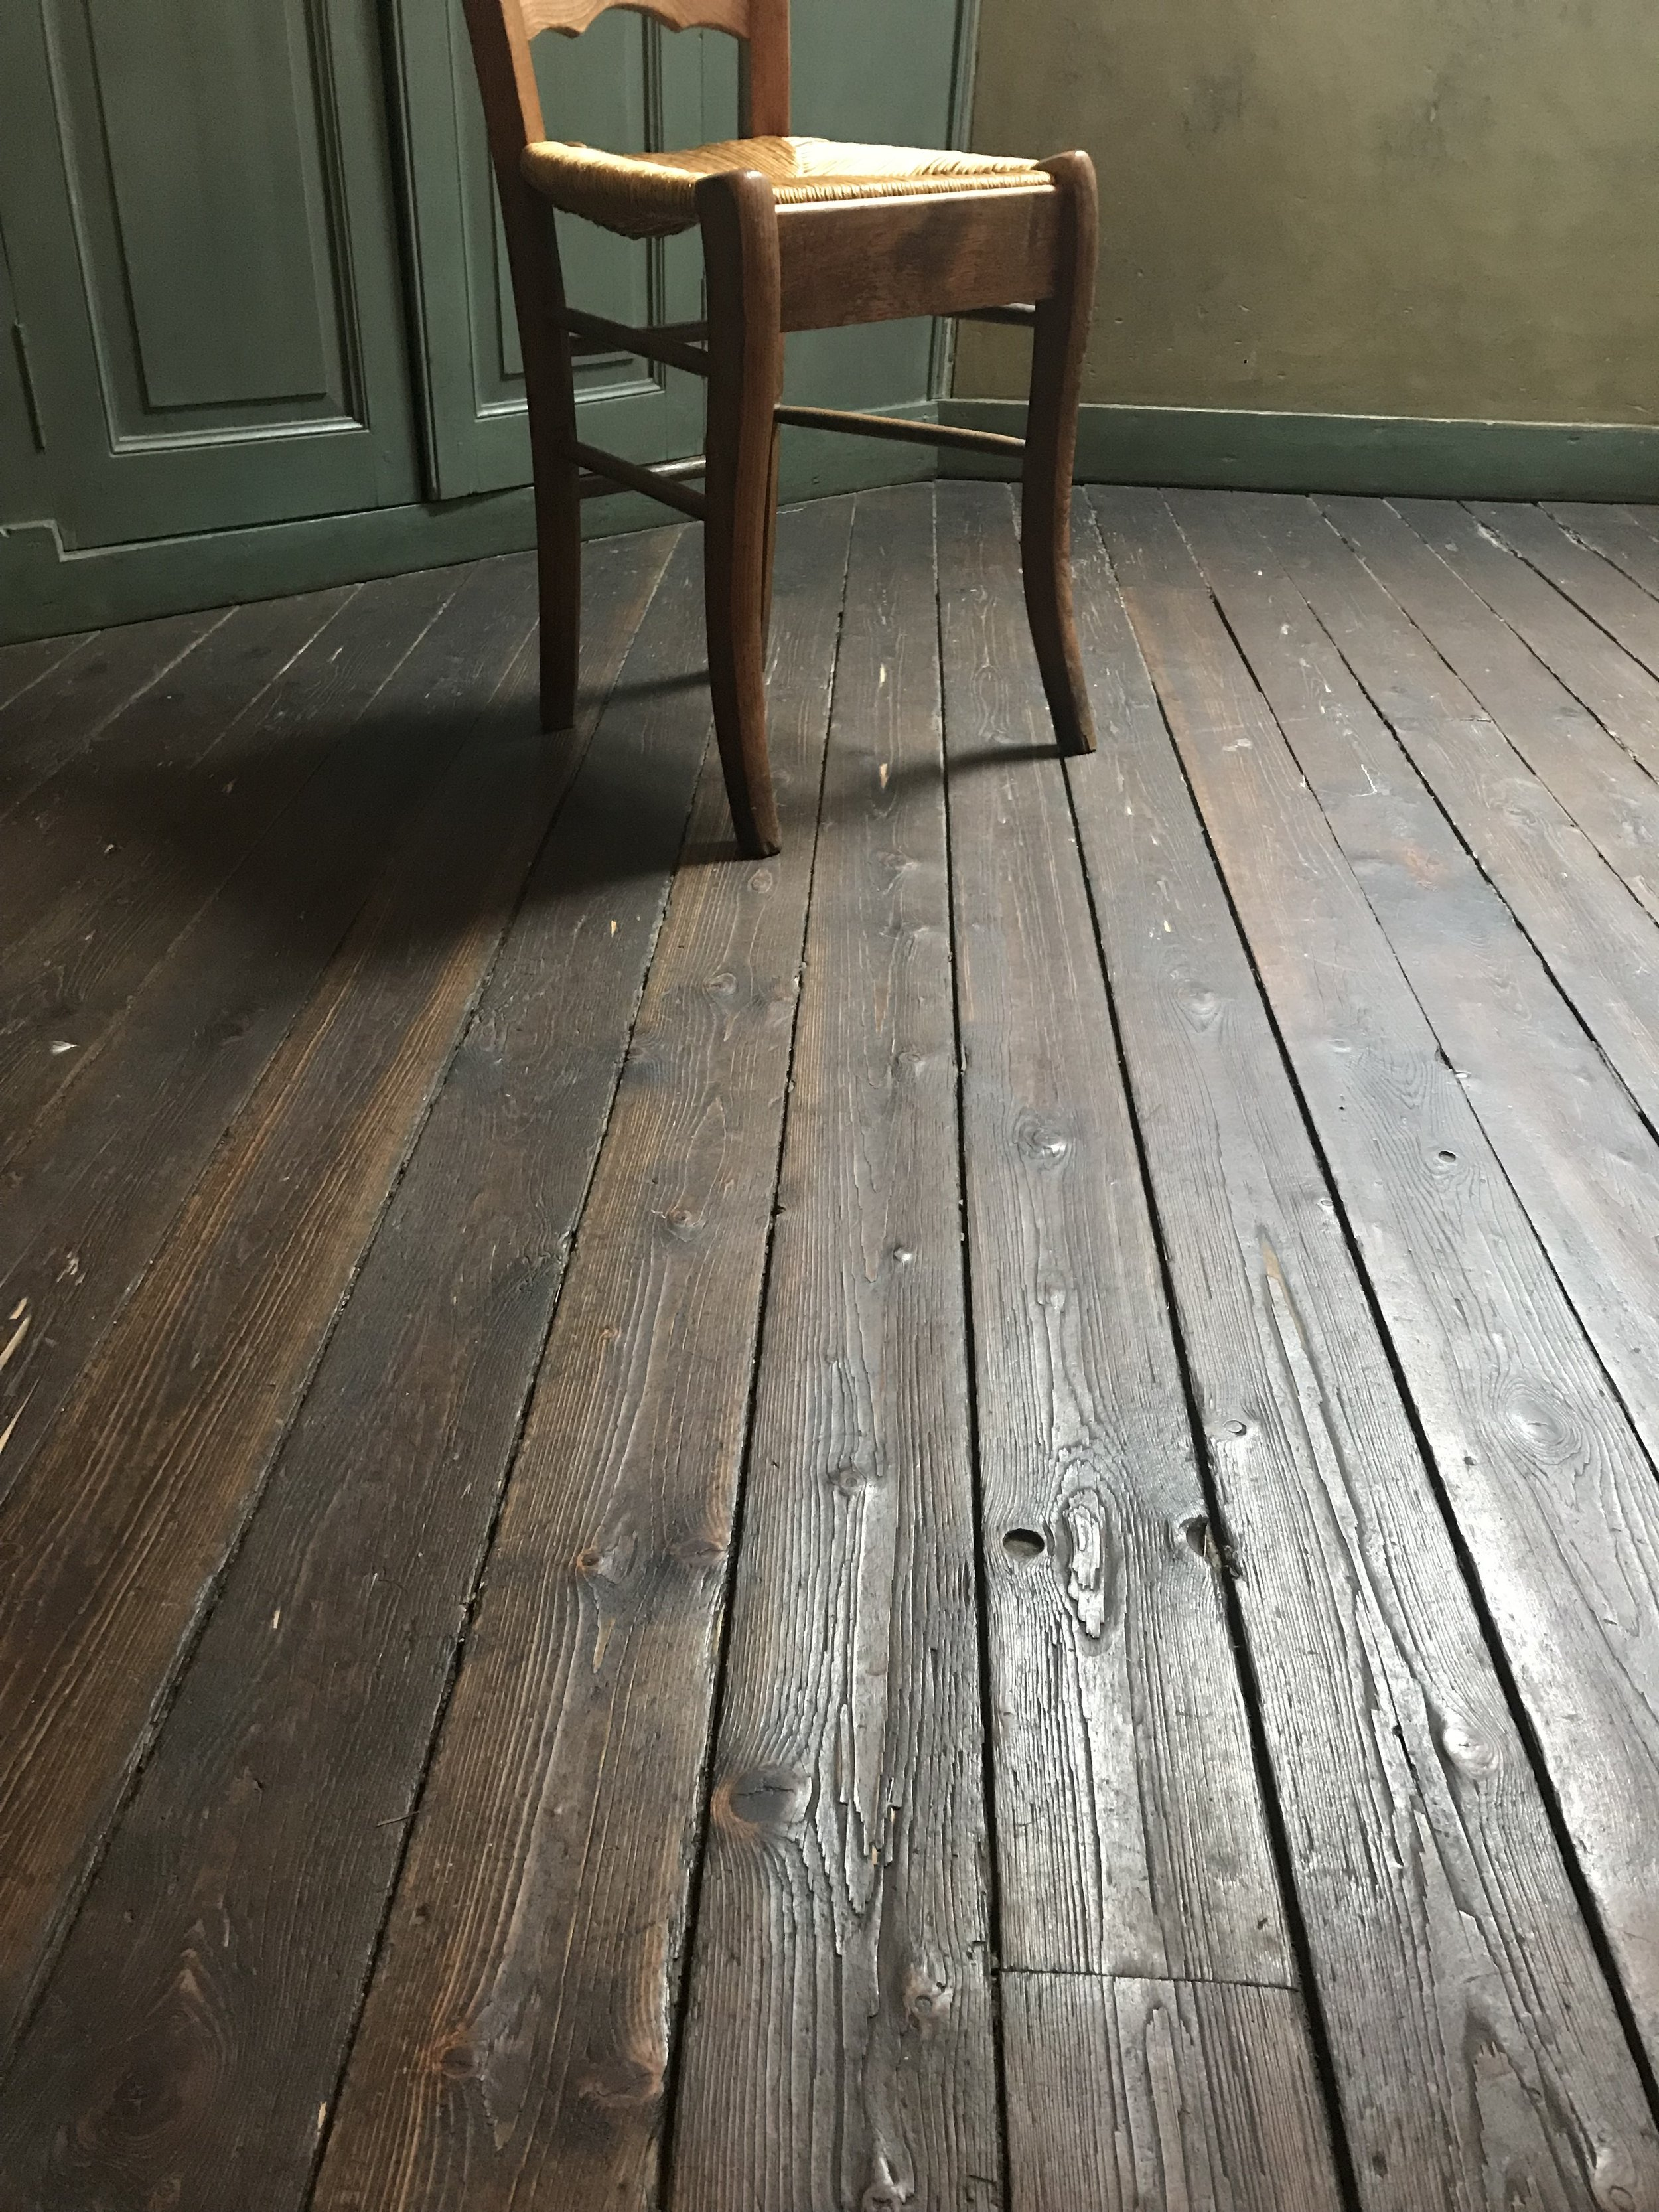 Sunlight warming the wooden floorboards in Van Gogh's room at the Auberge Ravoux